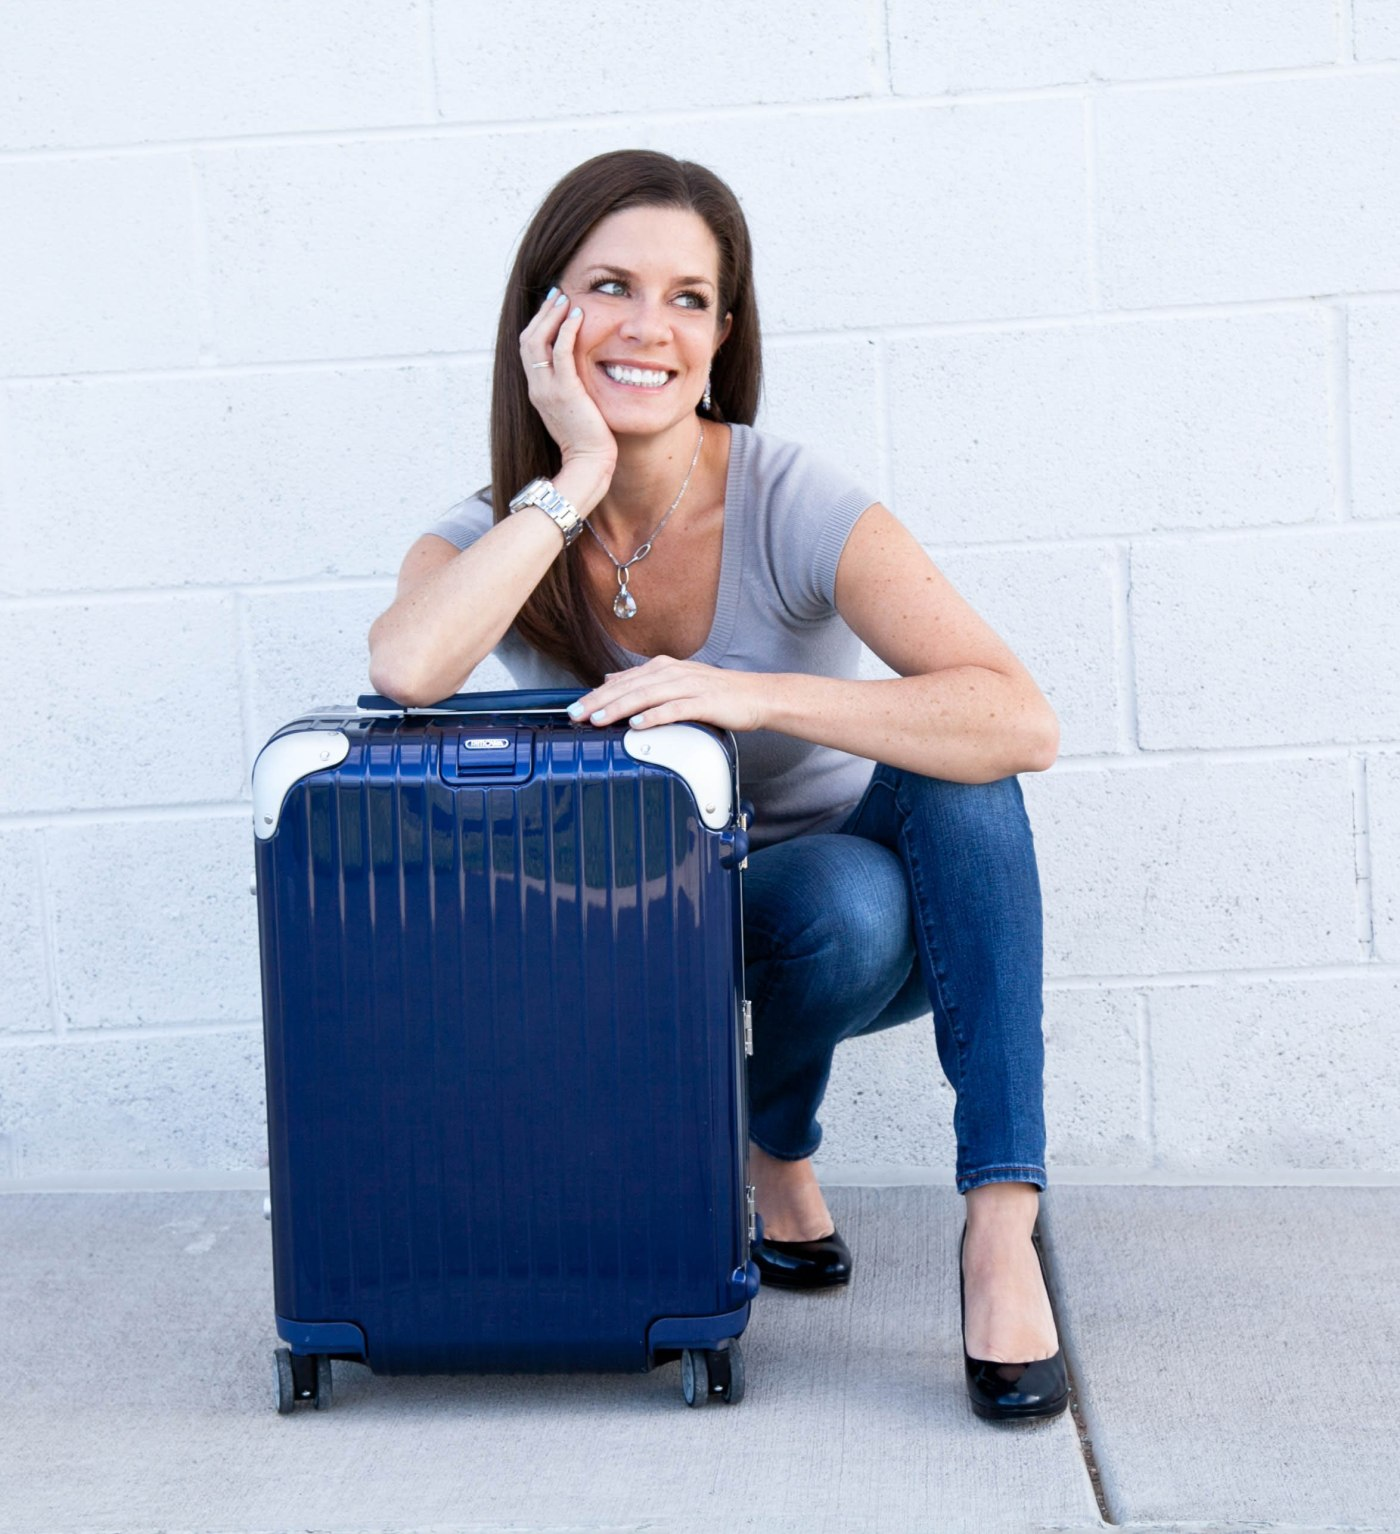 Stephanie Miller - Photo Courtesy of The Scenic Suitcase